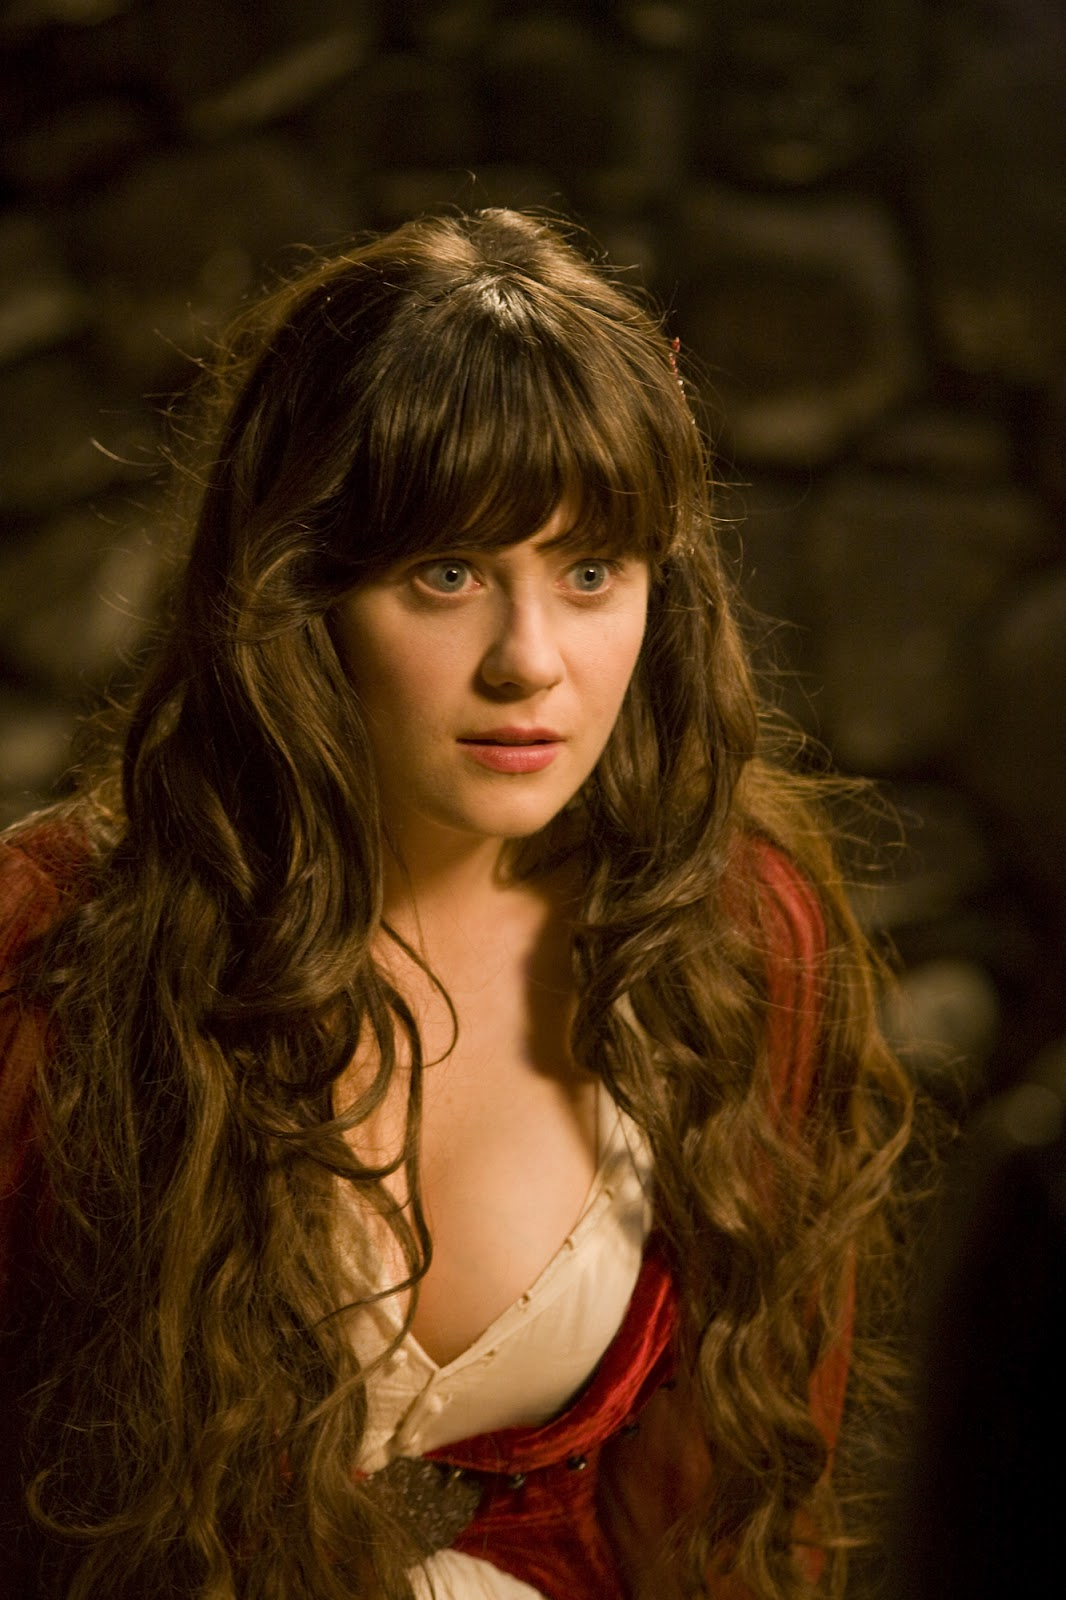 Zooey Deschanel Zooey Deschanel Hot